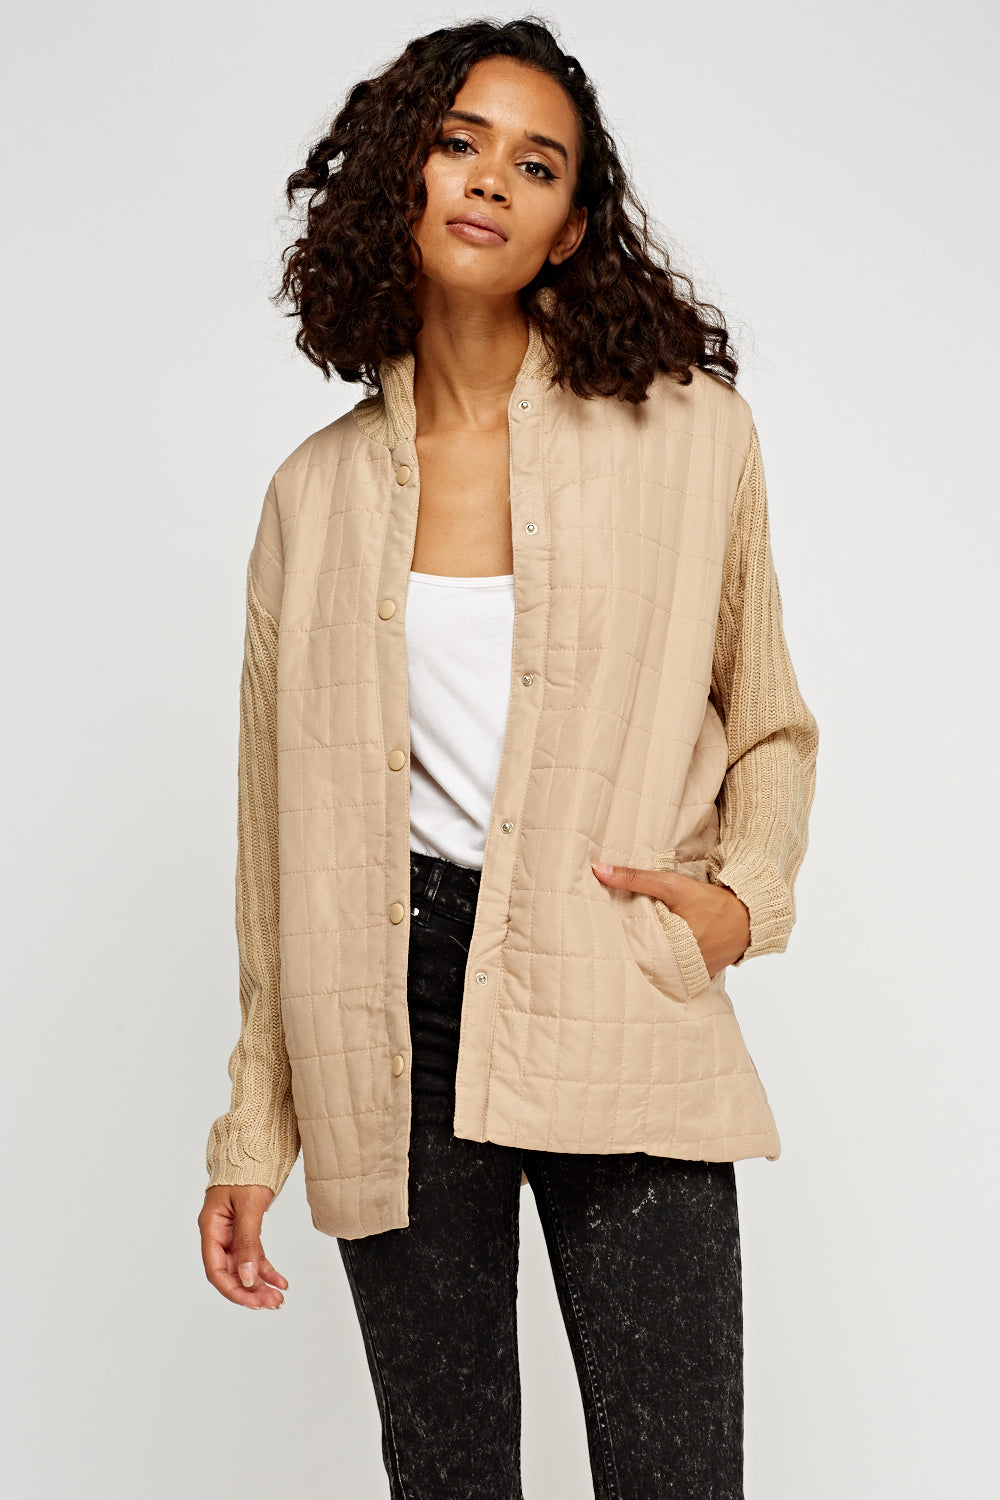 Priscilla Light Knitted Sleeve Contrast Jacket - Woven Trends